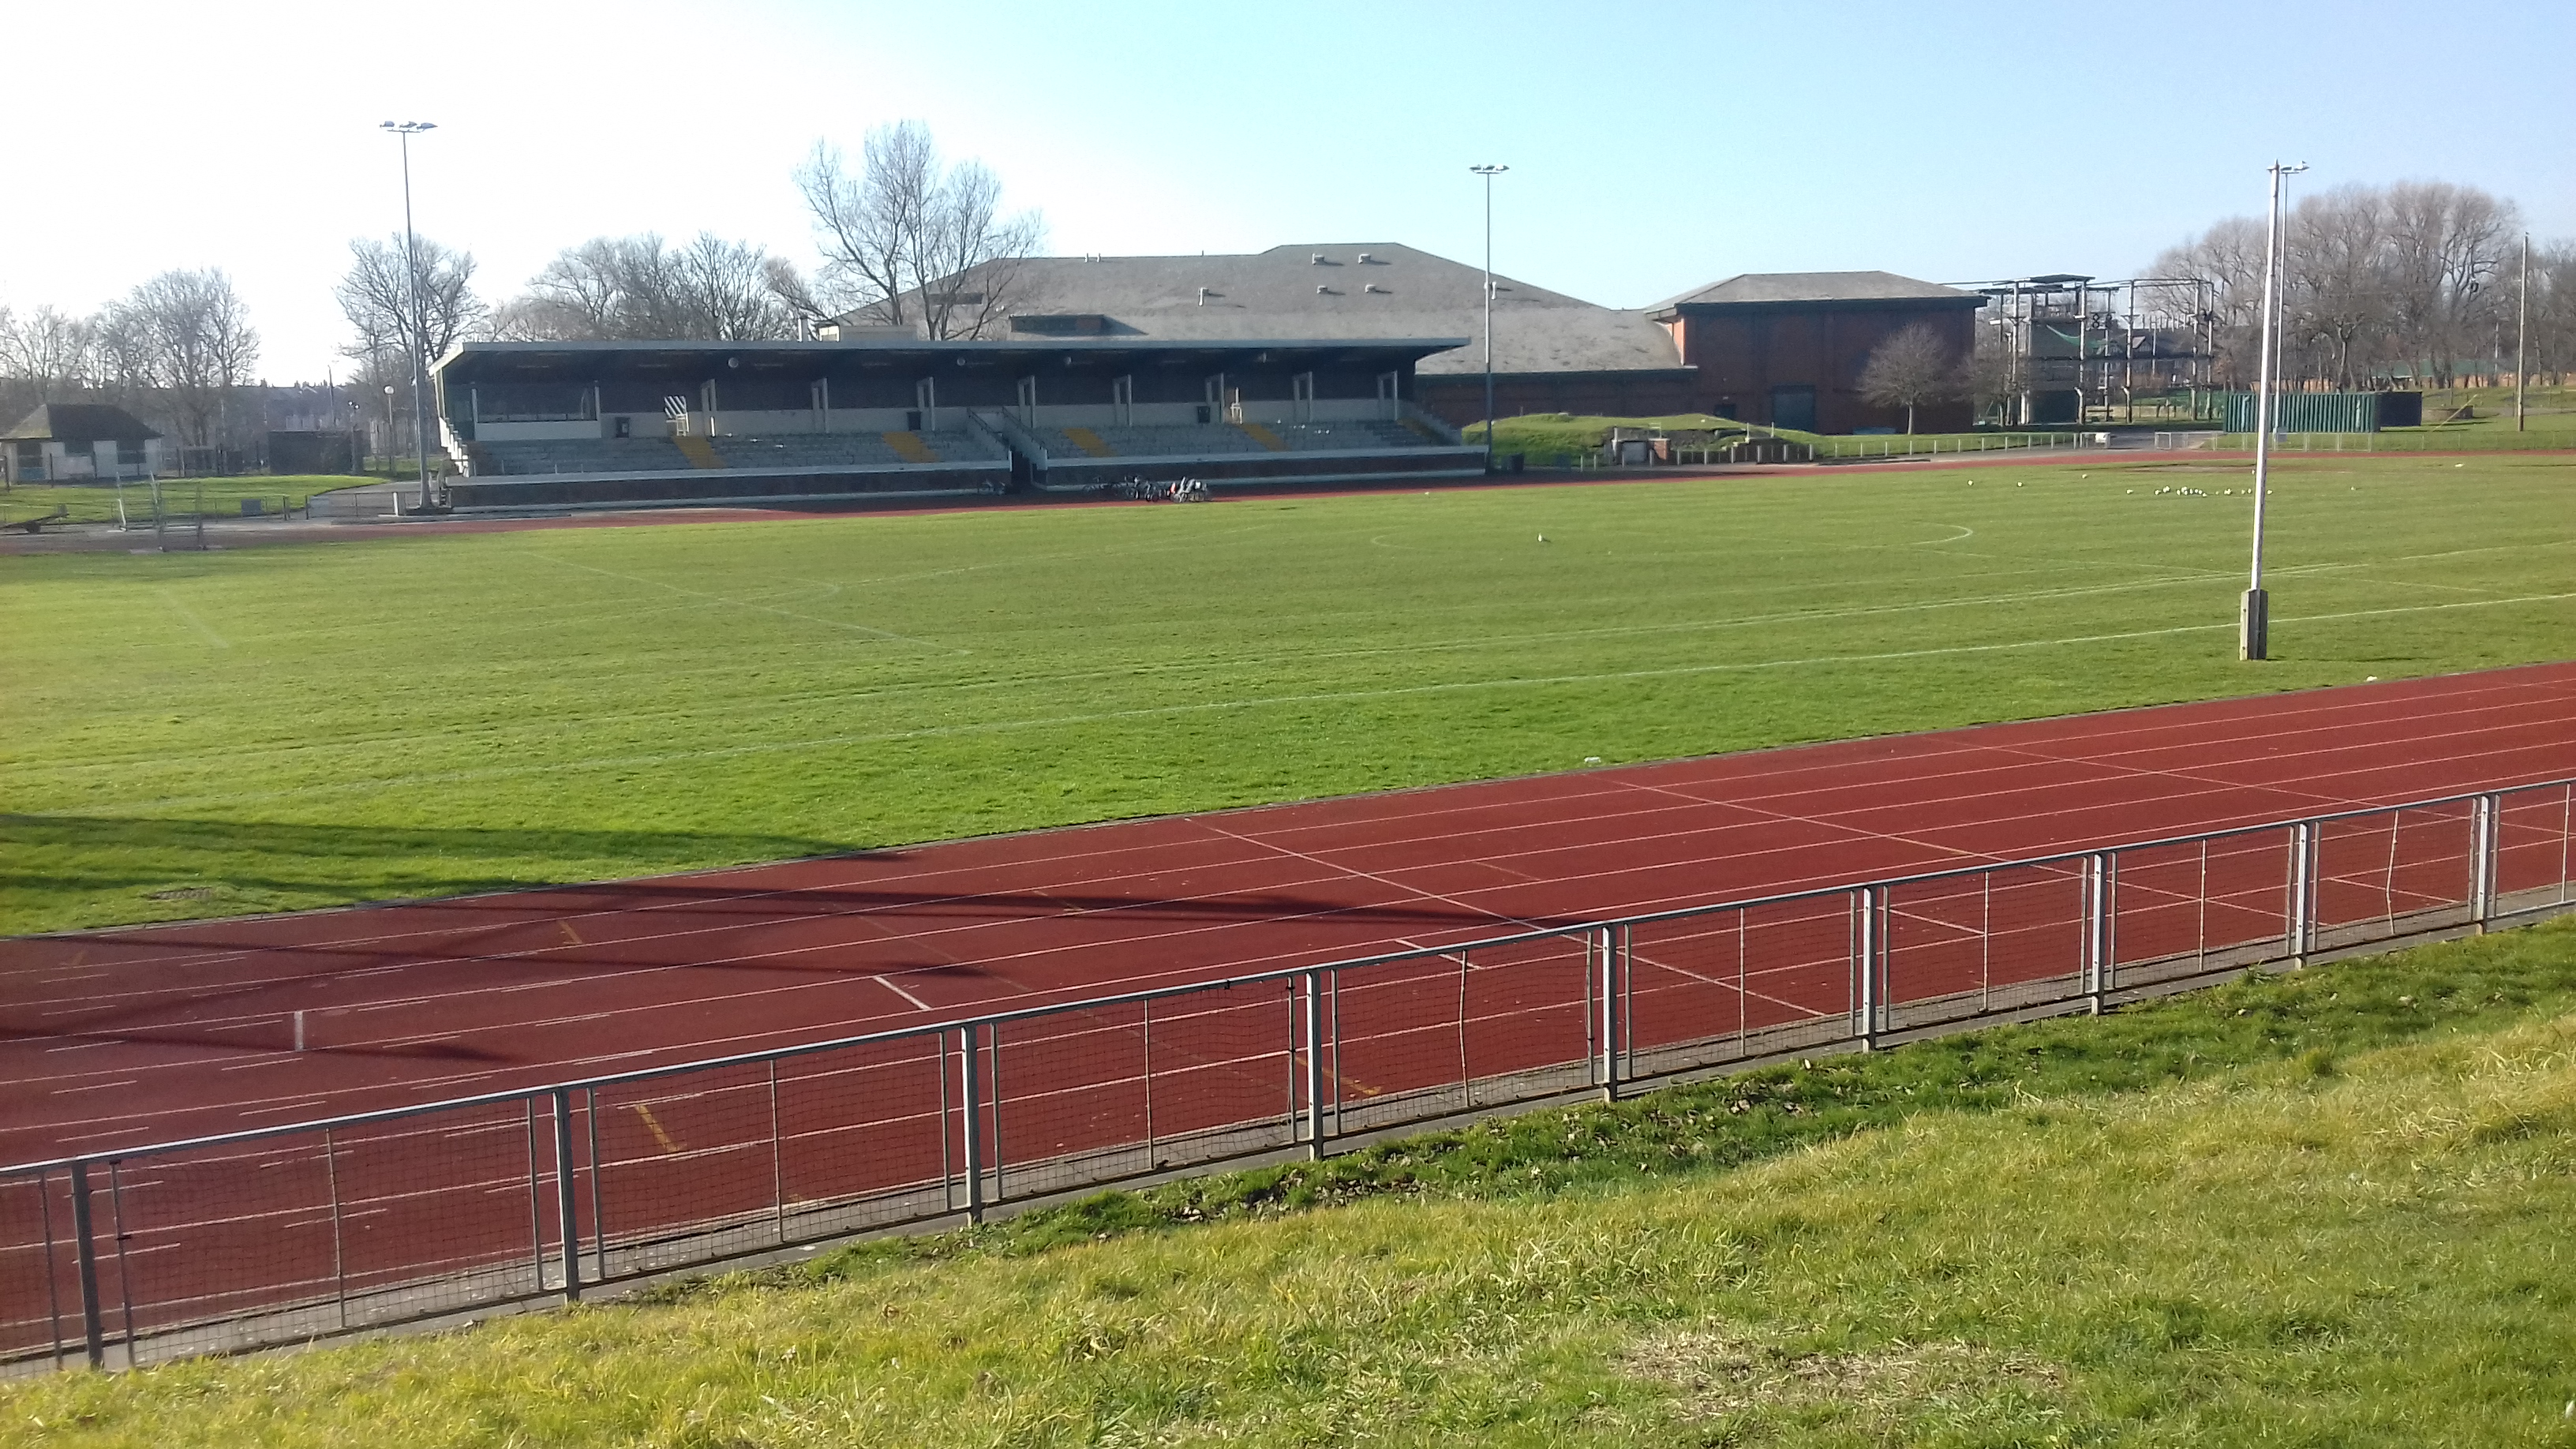 Outdoor athletics track and spectators stand.